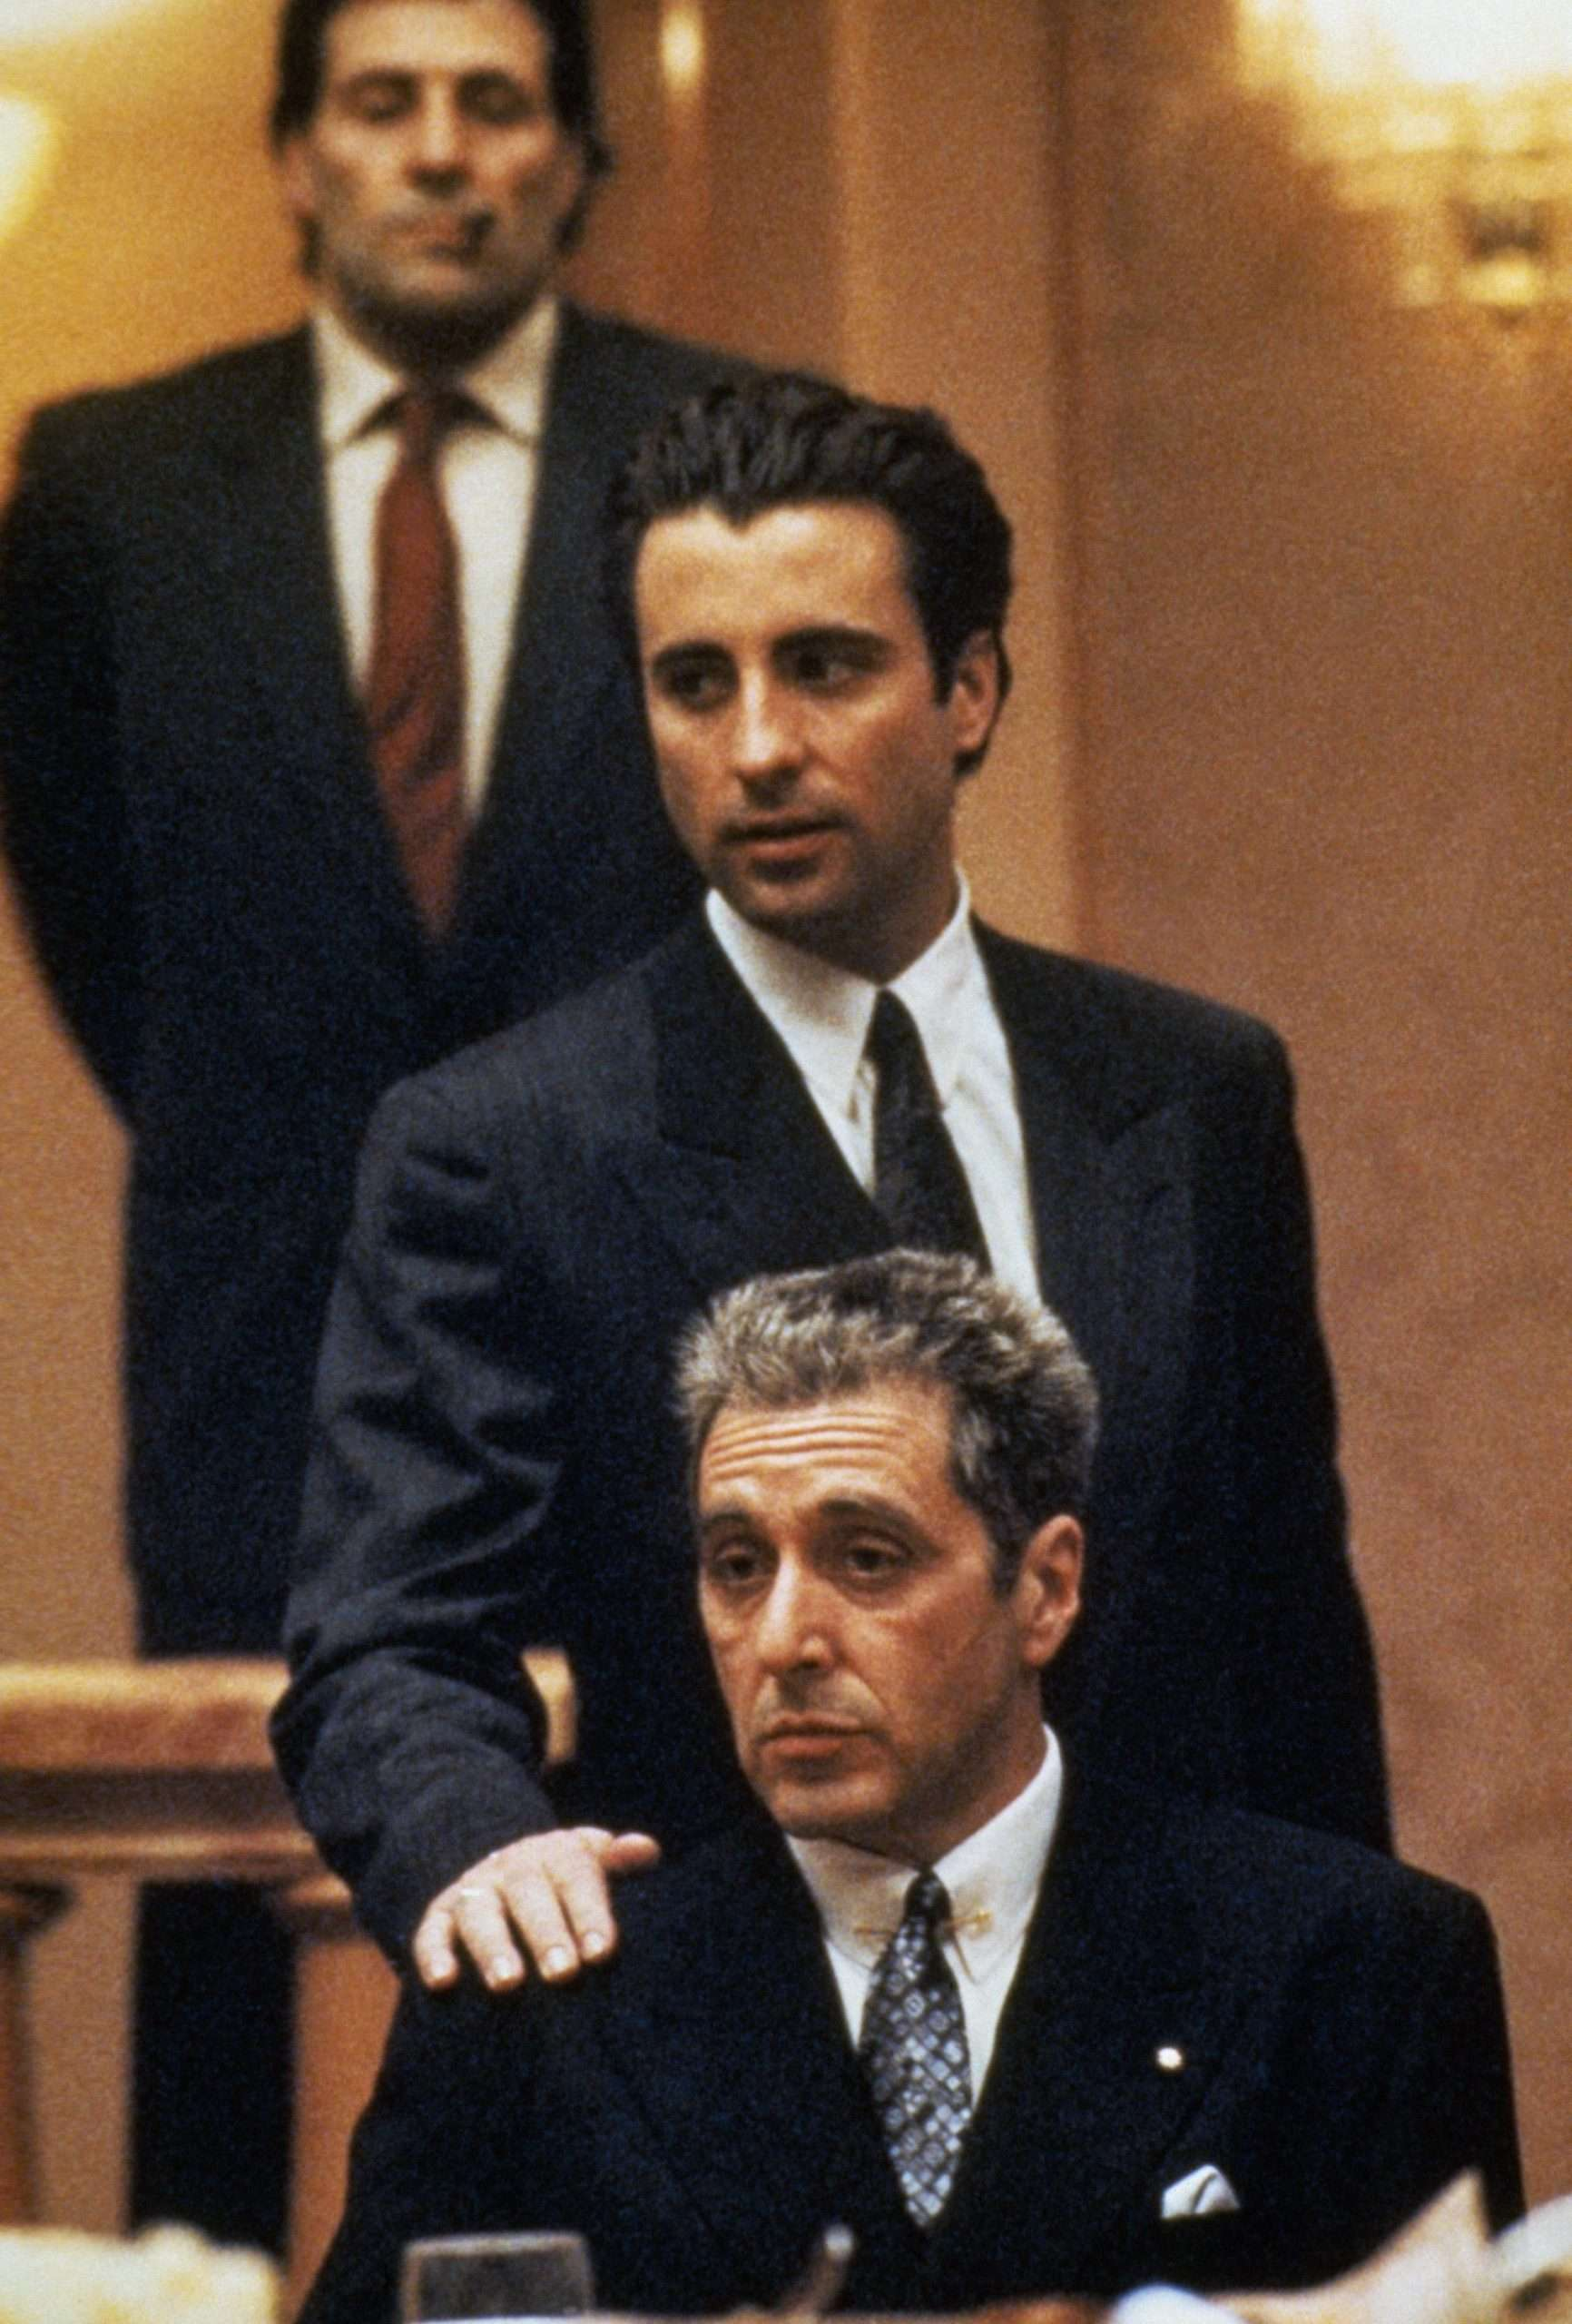 Paramount Announce The Godfather Iii 30th Anniversary Edition Hollywood Outbreak